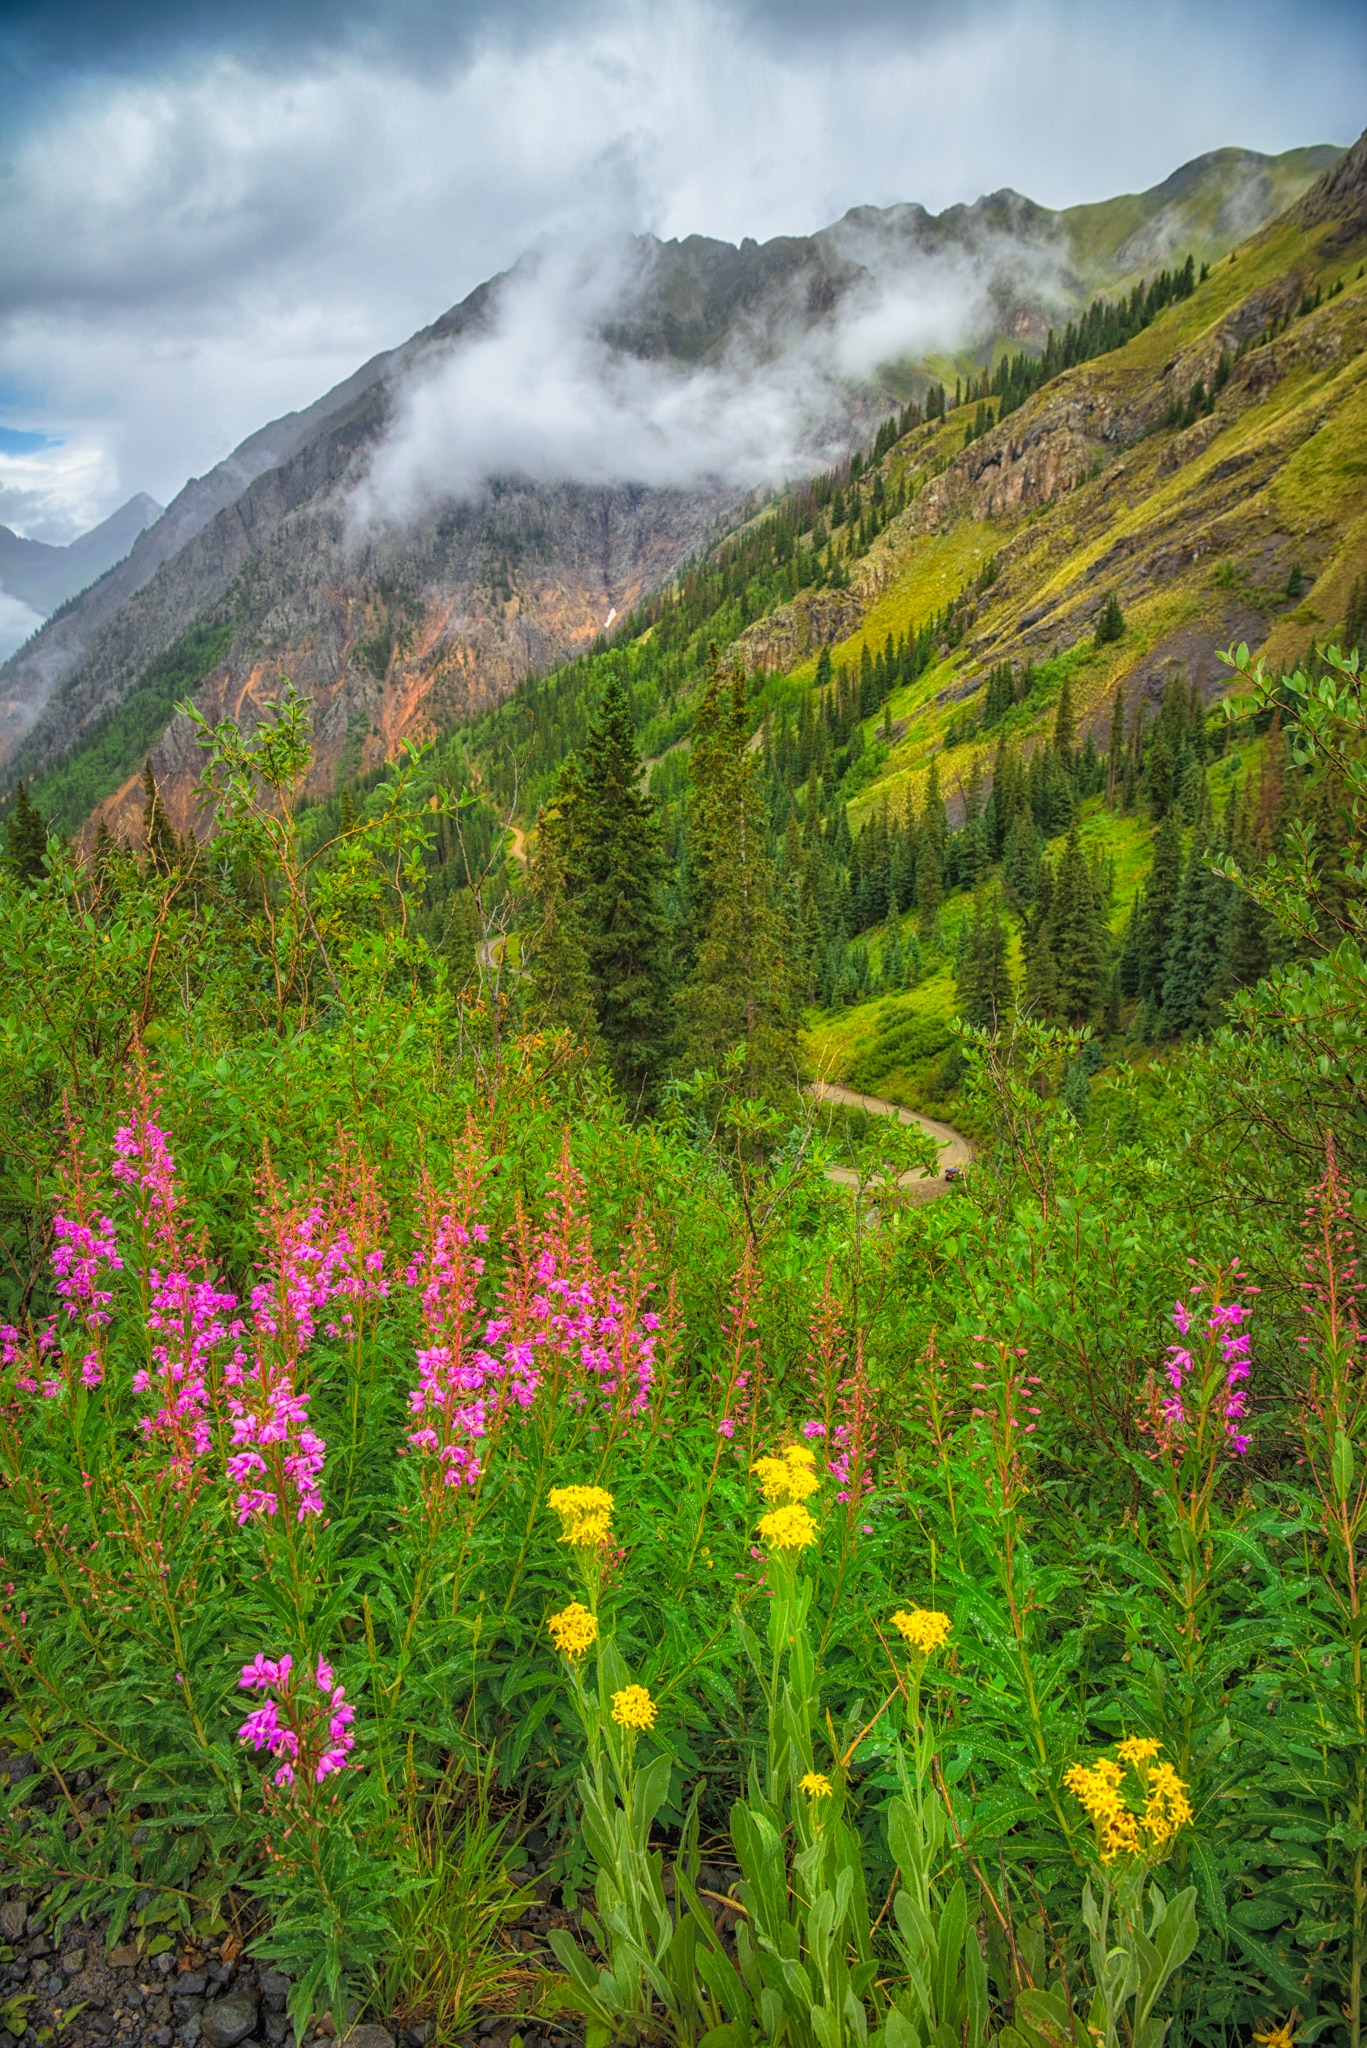 The fireweed and groundsel along Stony Pass Road near Silverton, Colorado, is especially brilliant in color on this cold and rainy day.